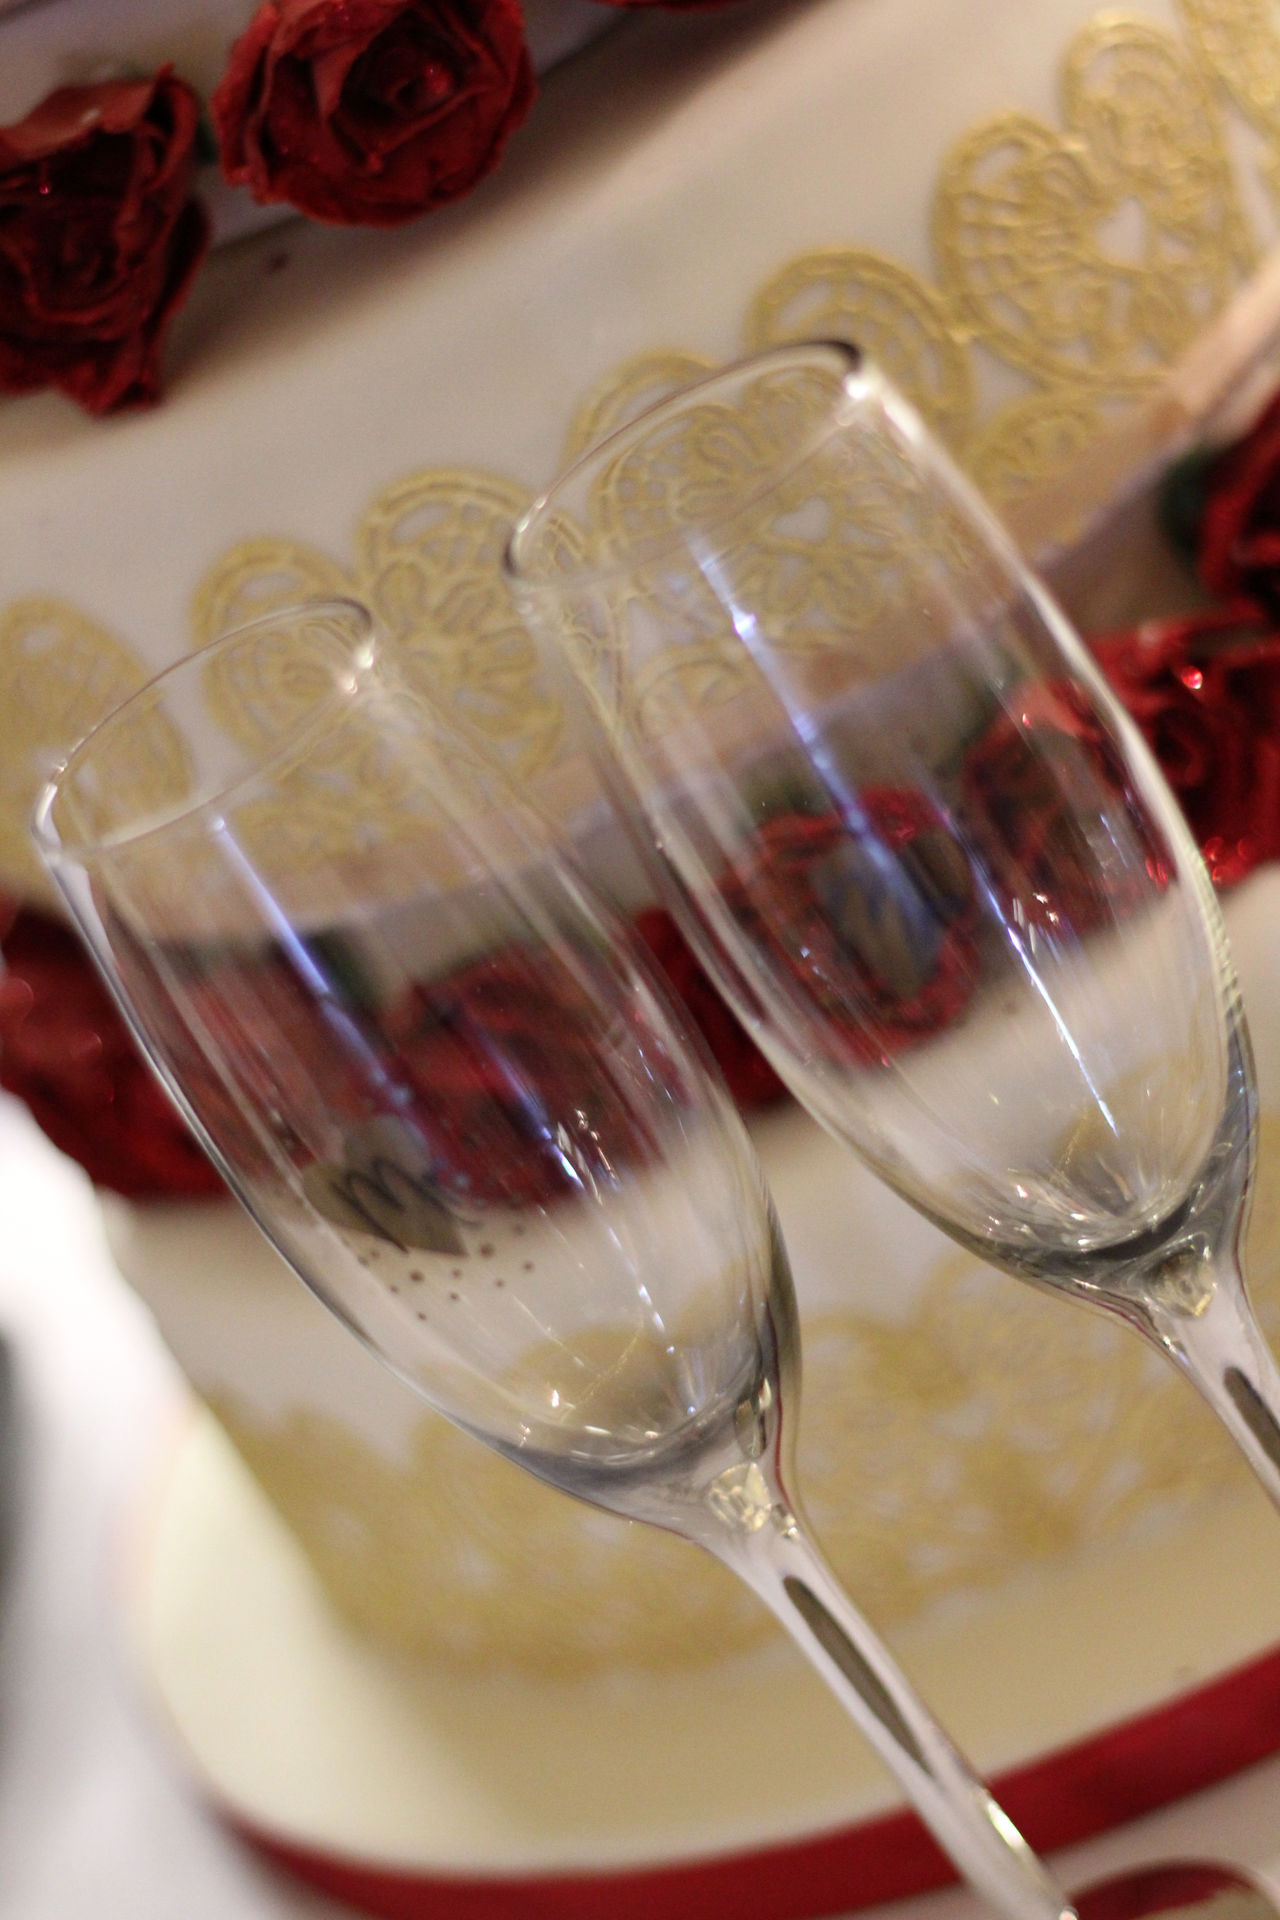 Wedding Day Scene Alcohol Champa Champagne Champagne Flute Close-up Day Drink Drinking Glass Food Food And Drink Freshness Indoors  No People Red Refreshment Wedding Wedding Cake Wedding Day Wedding Photography Wine Wineglass